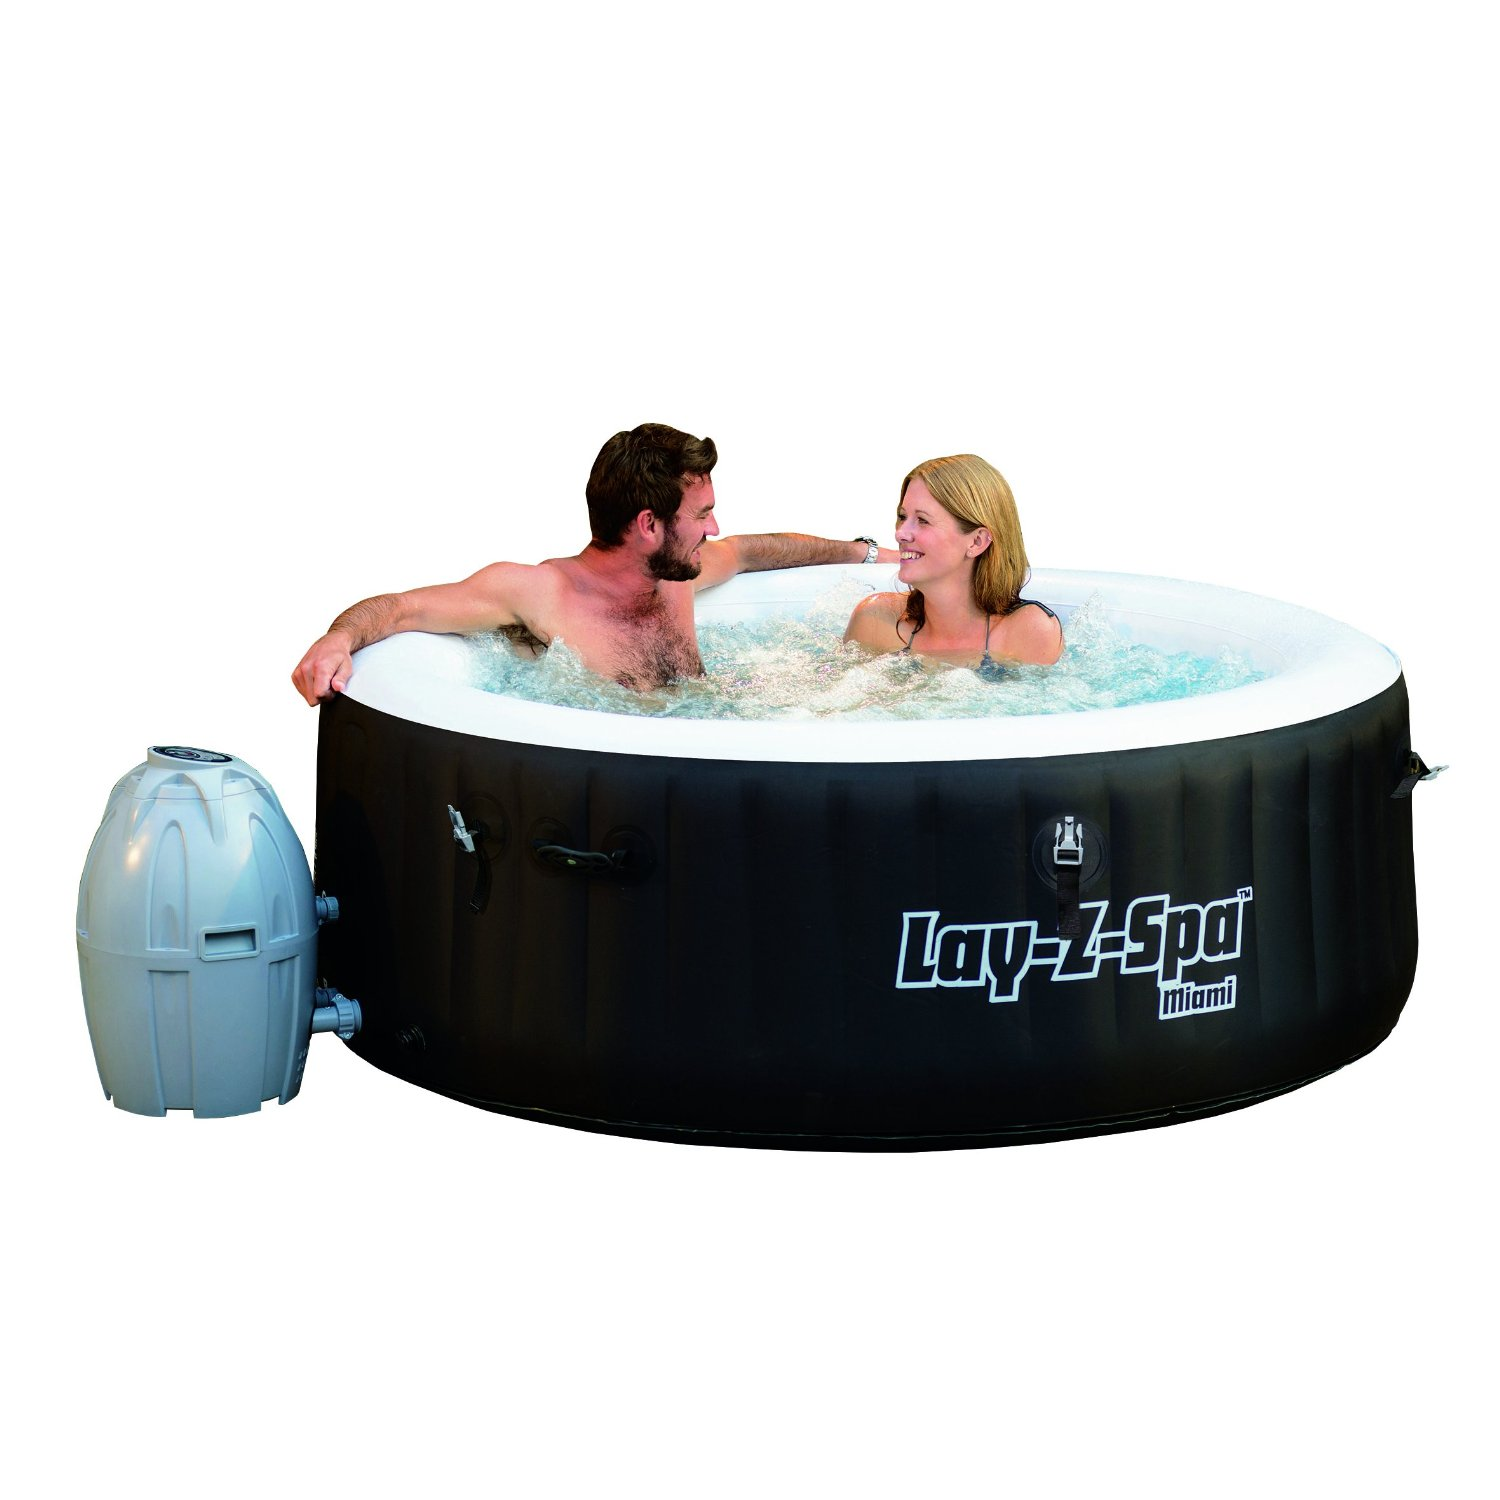 Top 10 Best Inflatable Hot Tub Reviews -- [2018 Choice]